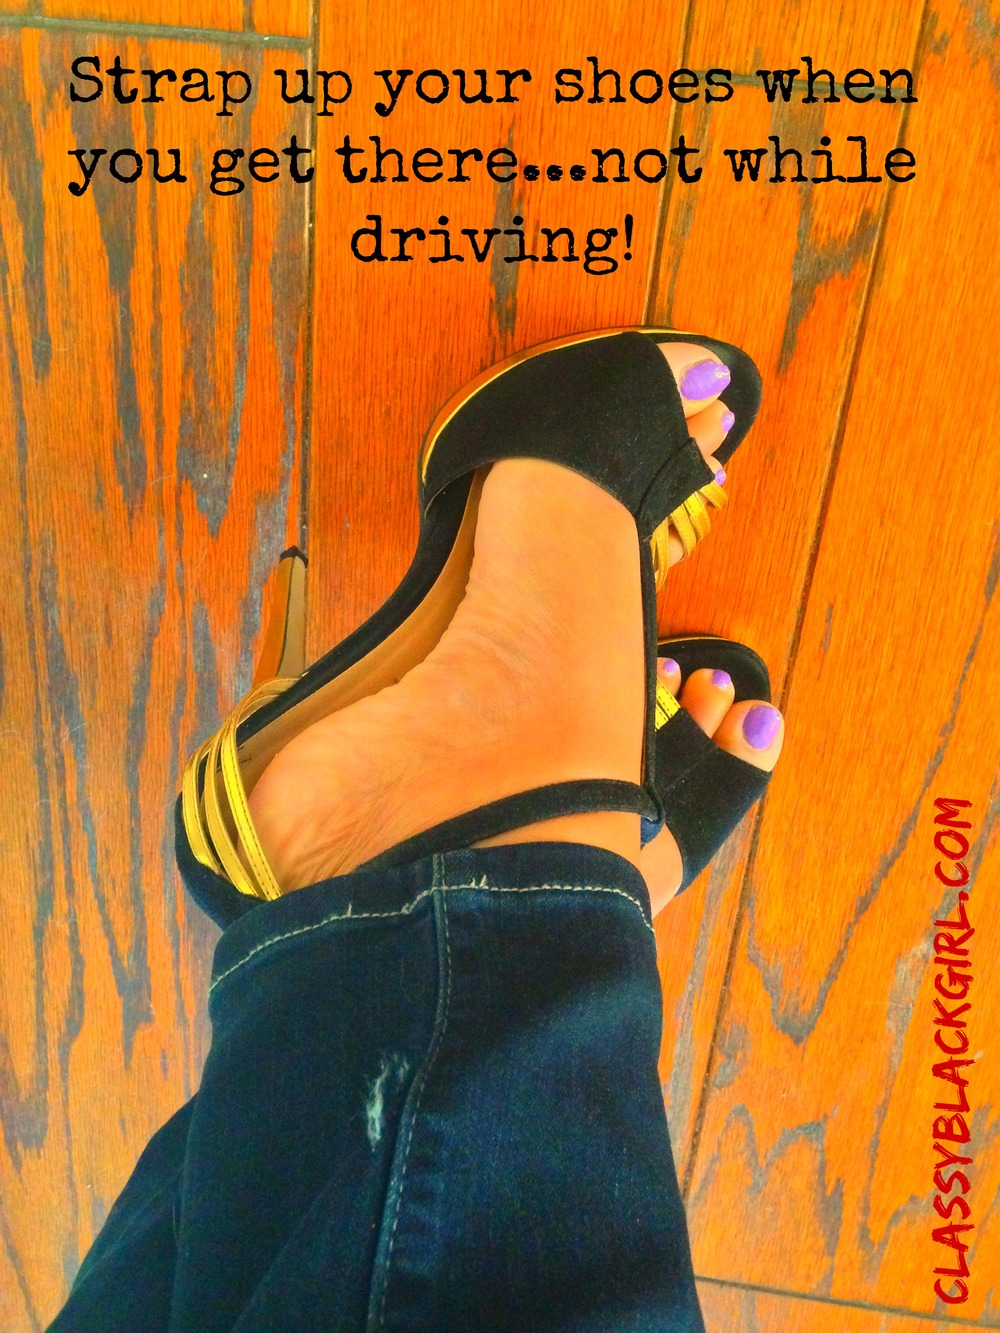 Strap Up Your Shoes, #decidetodrive, Distracted Driving